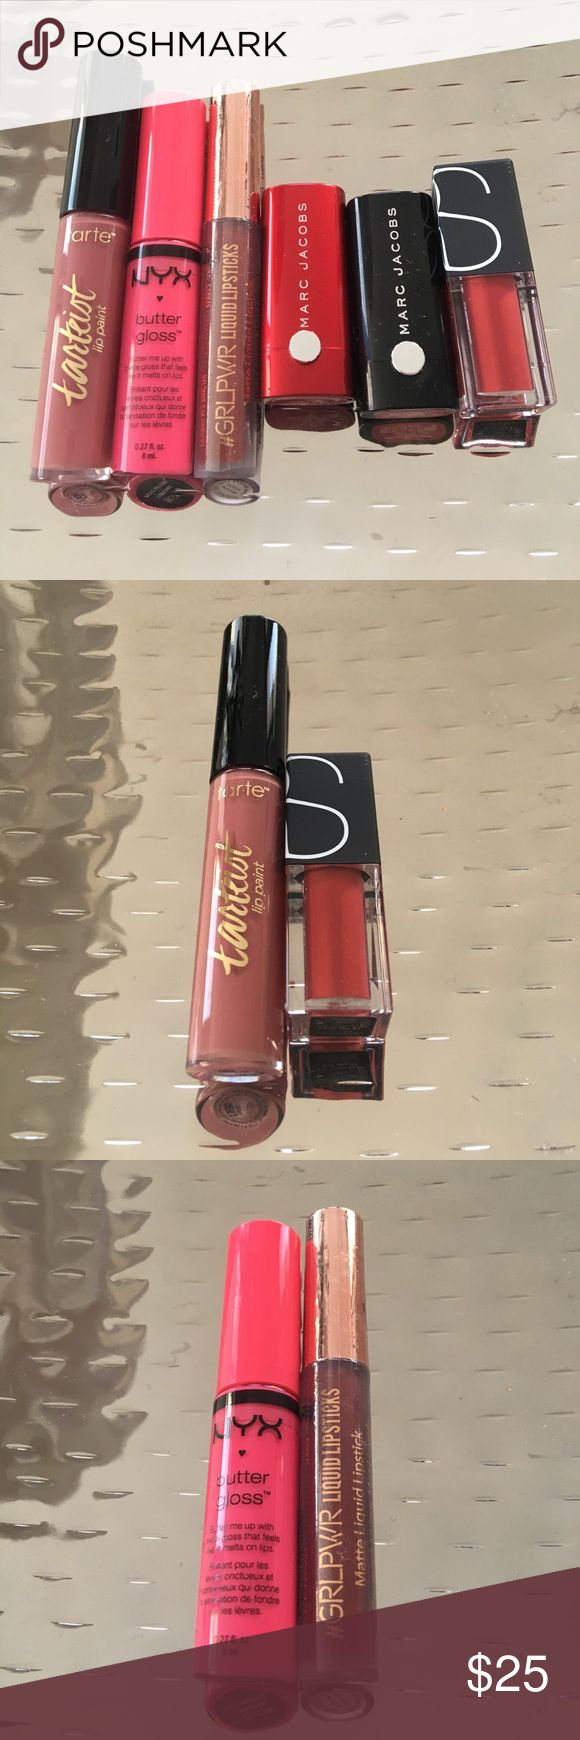 High end lip color set Tarte tarteist lip paint in tbt. (Swatched once). Nyx butter gloss in cupcake (swatched once). The beauty crop matte liquid lipstick in imma browse. (New, unused). Marc Jacobs lip creme in kiss kiss bang bang (new, unused). Marc Jacobs lip creme in so rouge (swatched once). NARS velvet lip glide in Le Palace. (New, unused- comes with box). **small cosmetic case included as FREE gift!!** tarte Makeup Lipstick